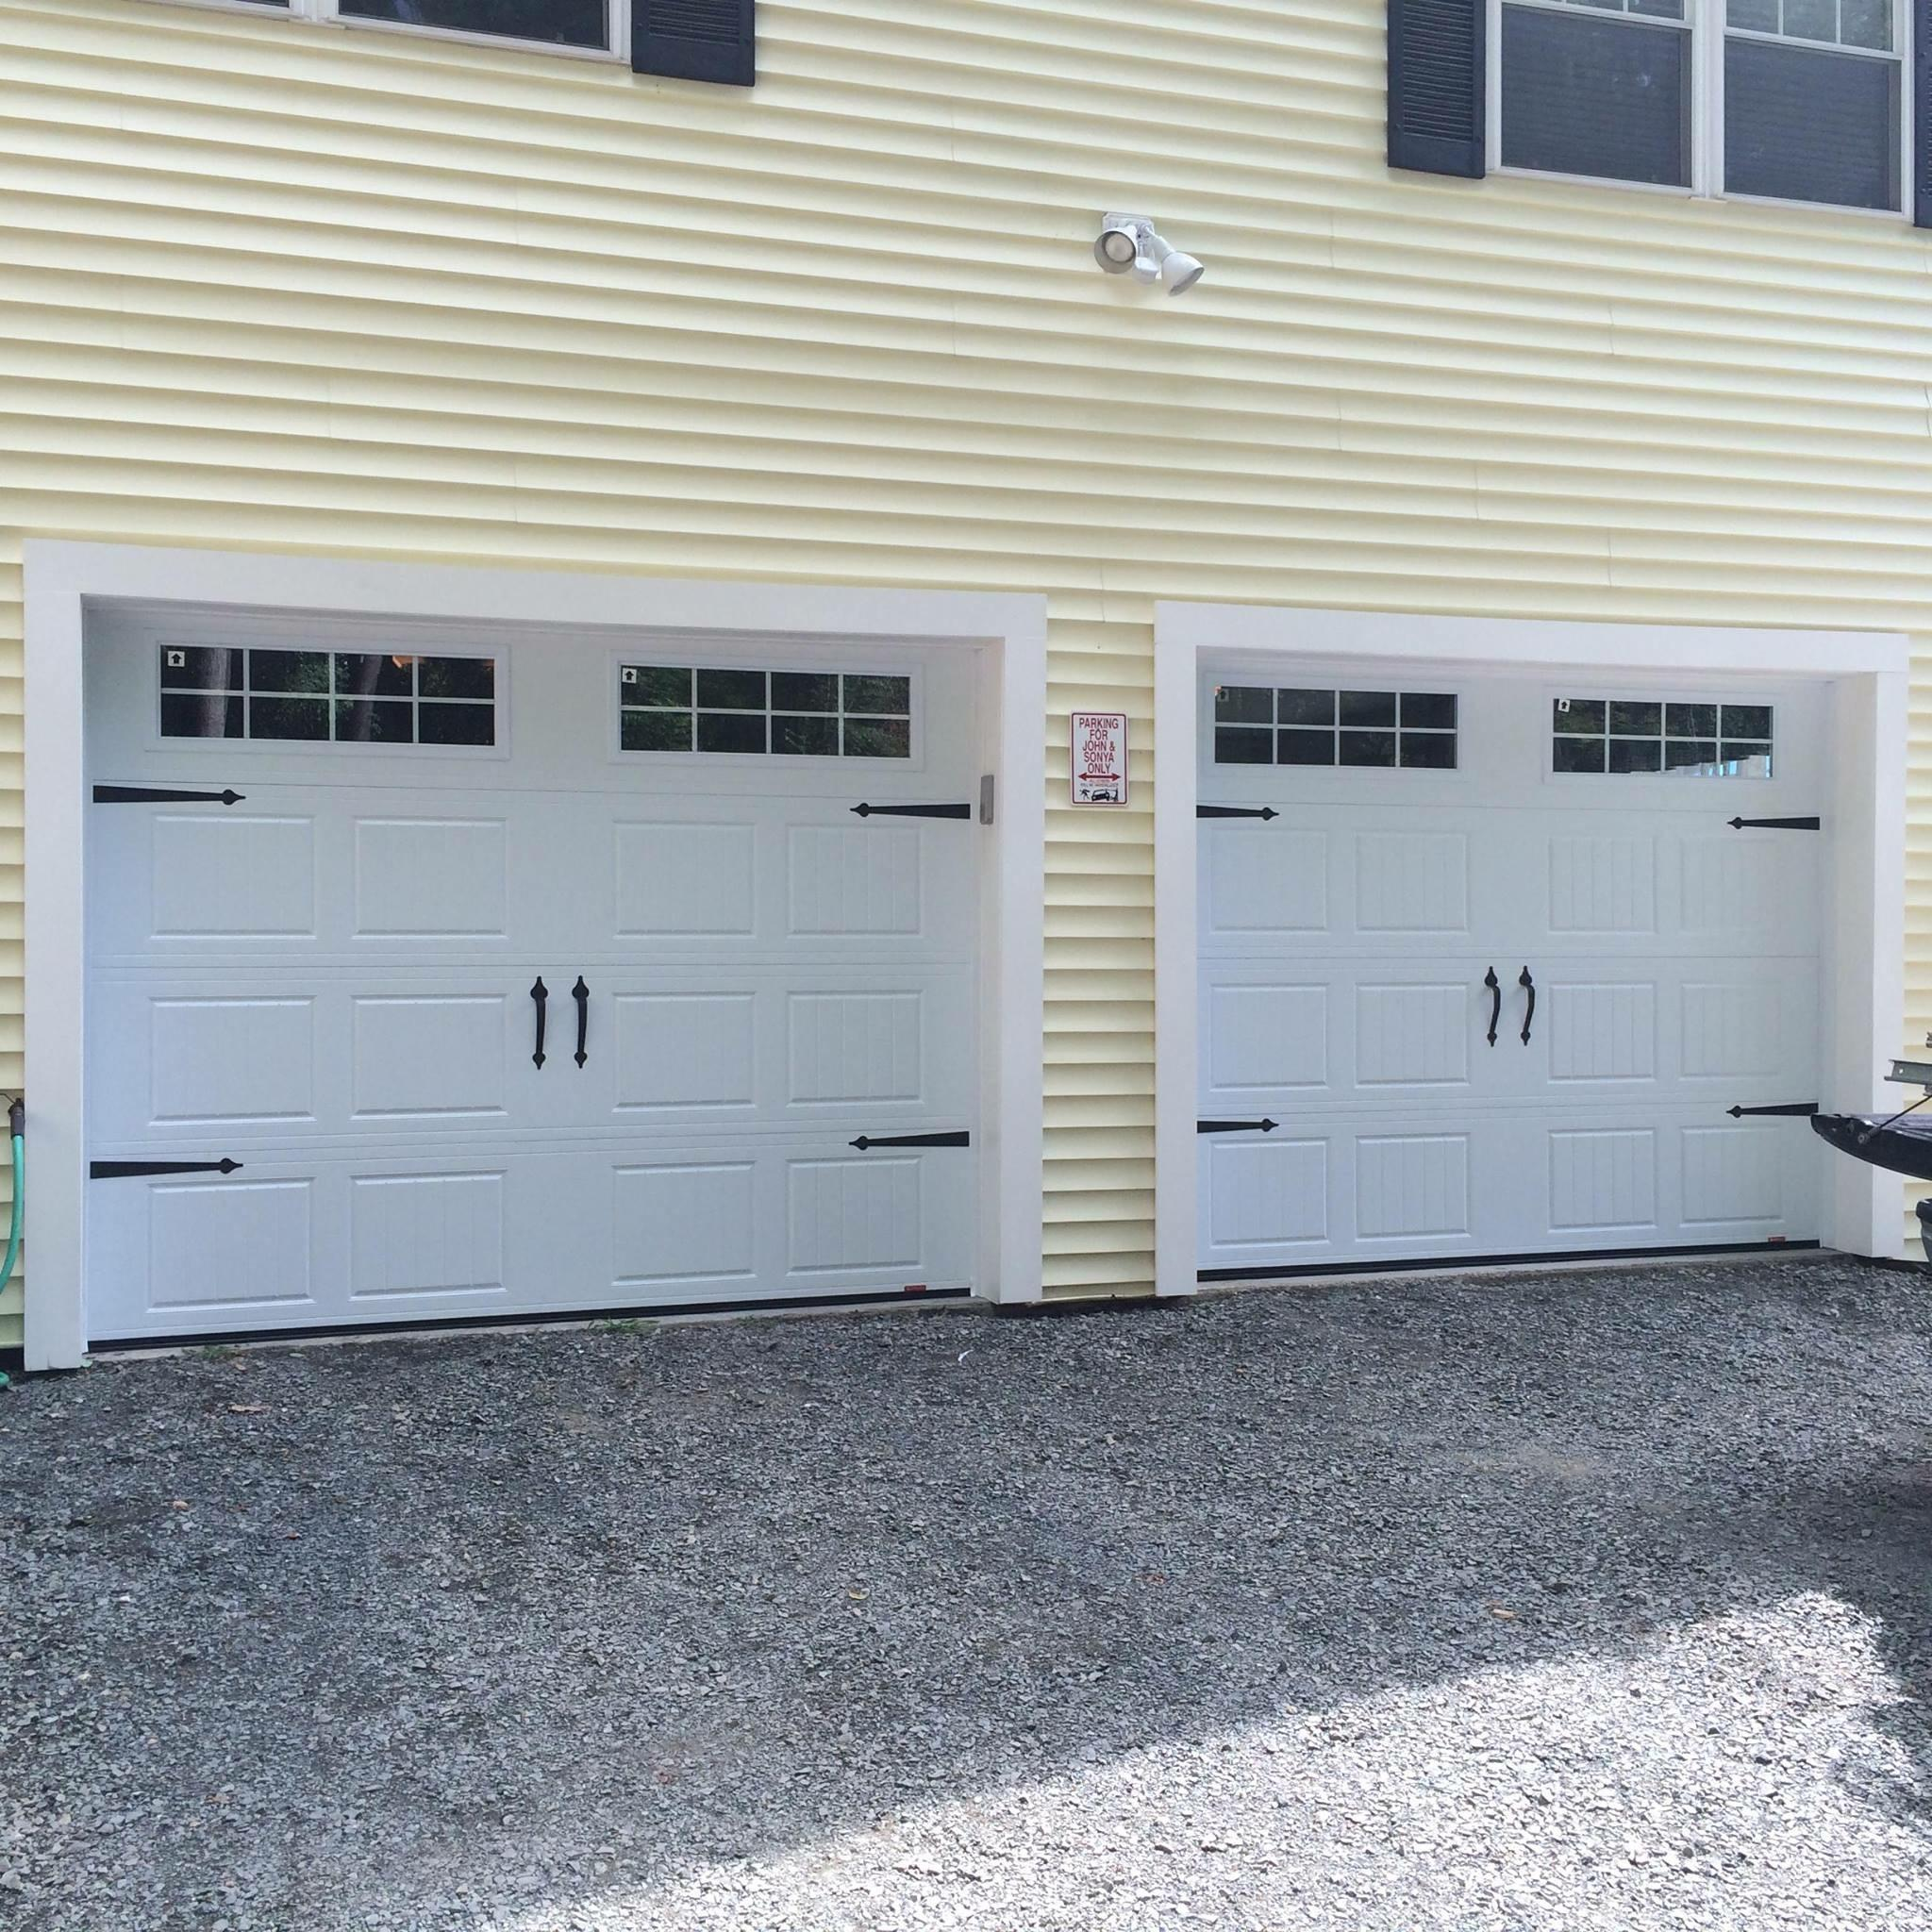 2048 #526579 Overhead Doors Solutions In West Haven CT 06516 ChamberofCommerce  image Overhead Garage Doors Residential Reviews 37132048